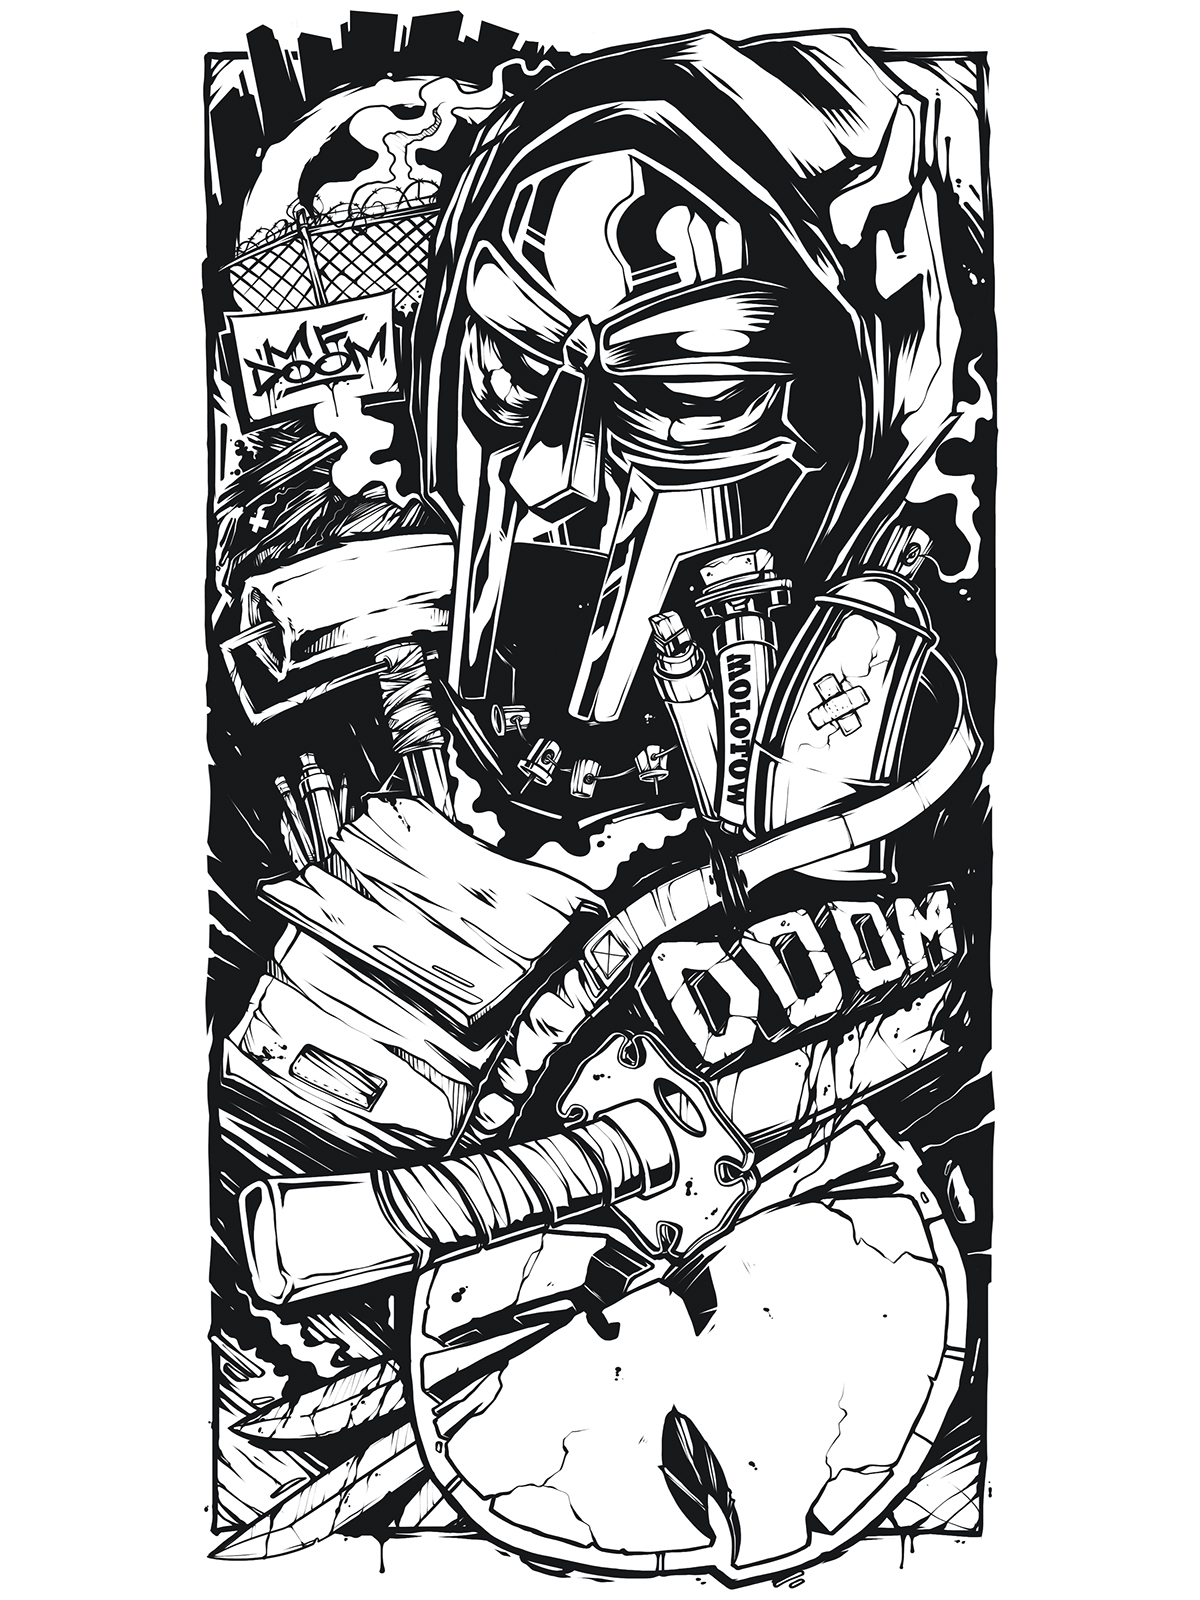 Sleeve tattoo sketch mf doom wu tang on behance for Mf doom tattoo